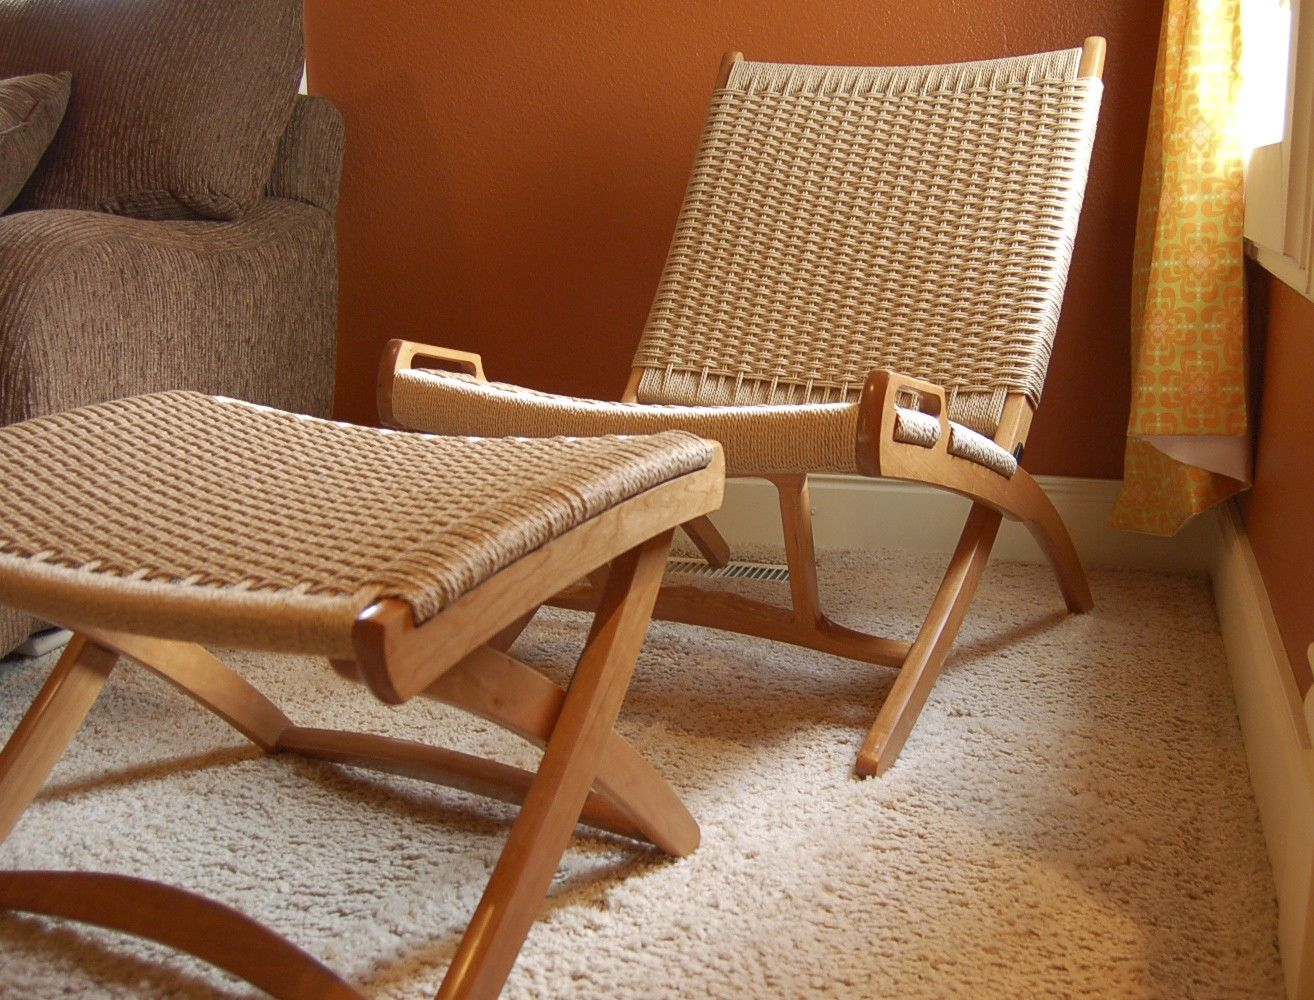 Roxy Folding Chair In Teak And Danish Cord   Hardtofind. | Organised |  Pinterest | Folding Chairs, Teak And Room